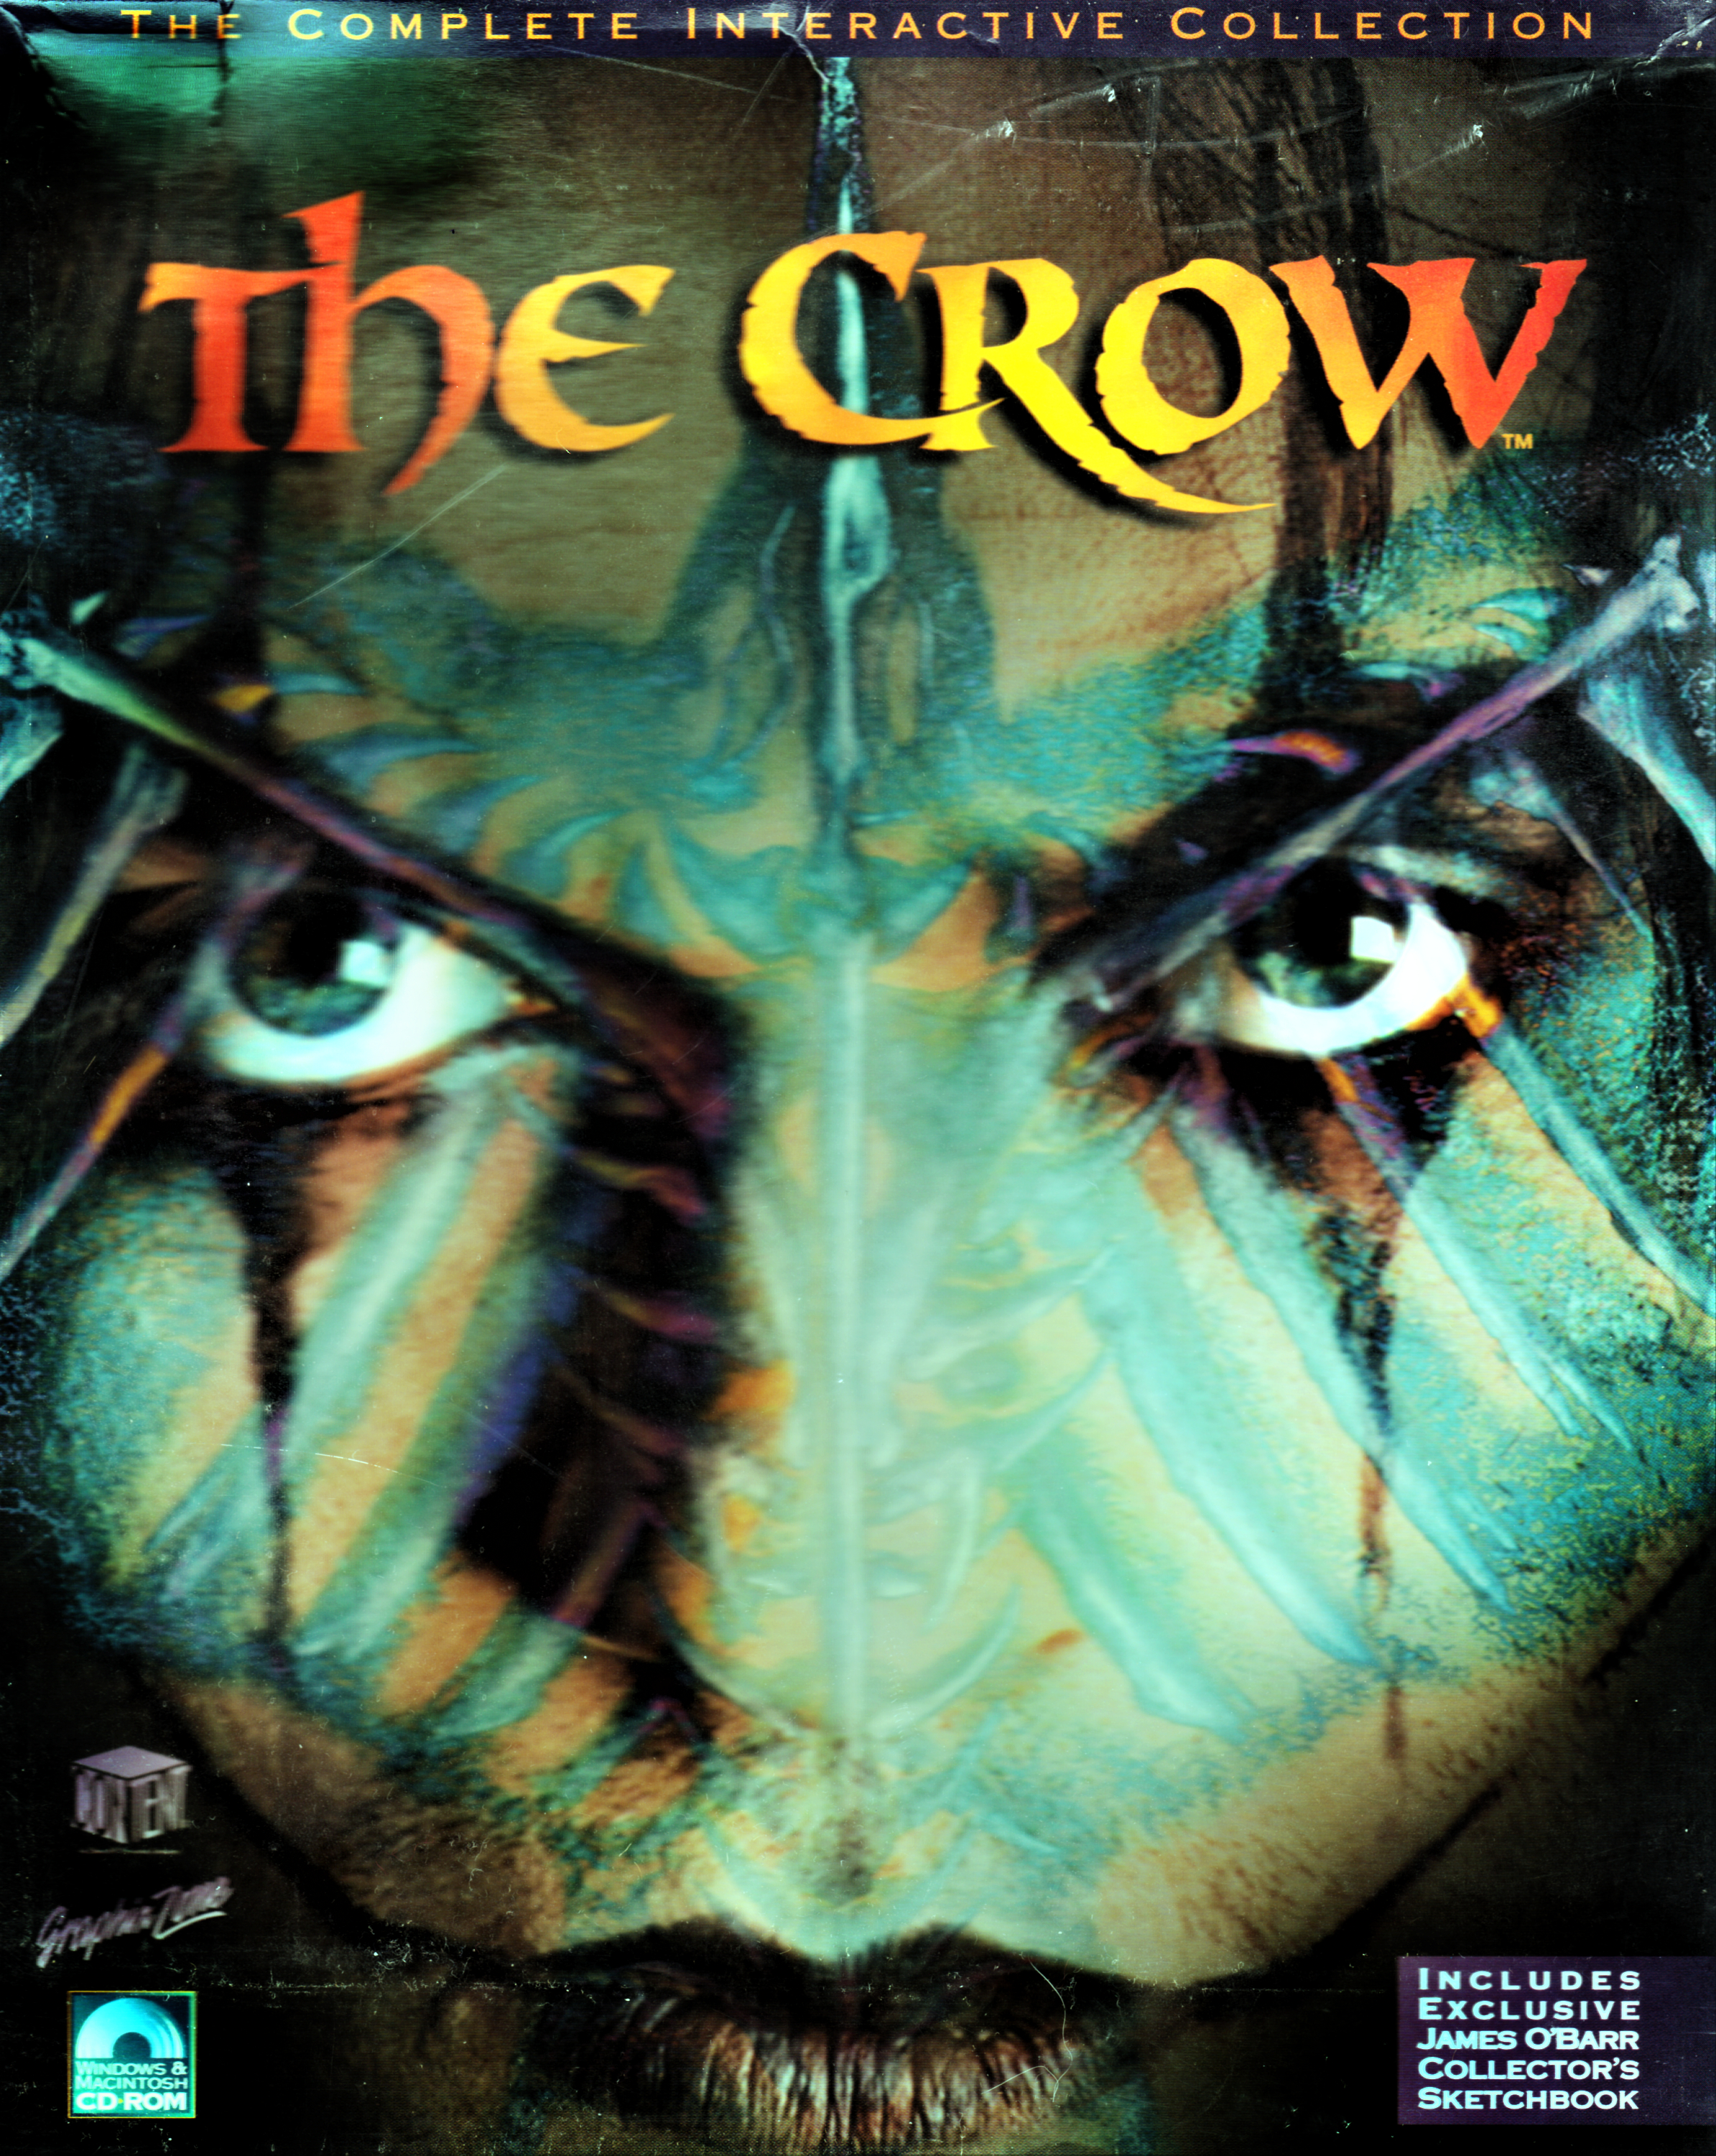 The Crow: The Complete Interactive Collection (Video Game